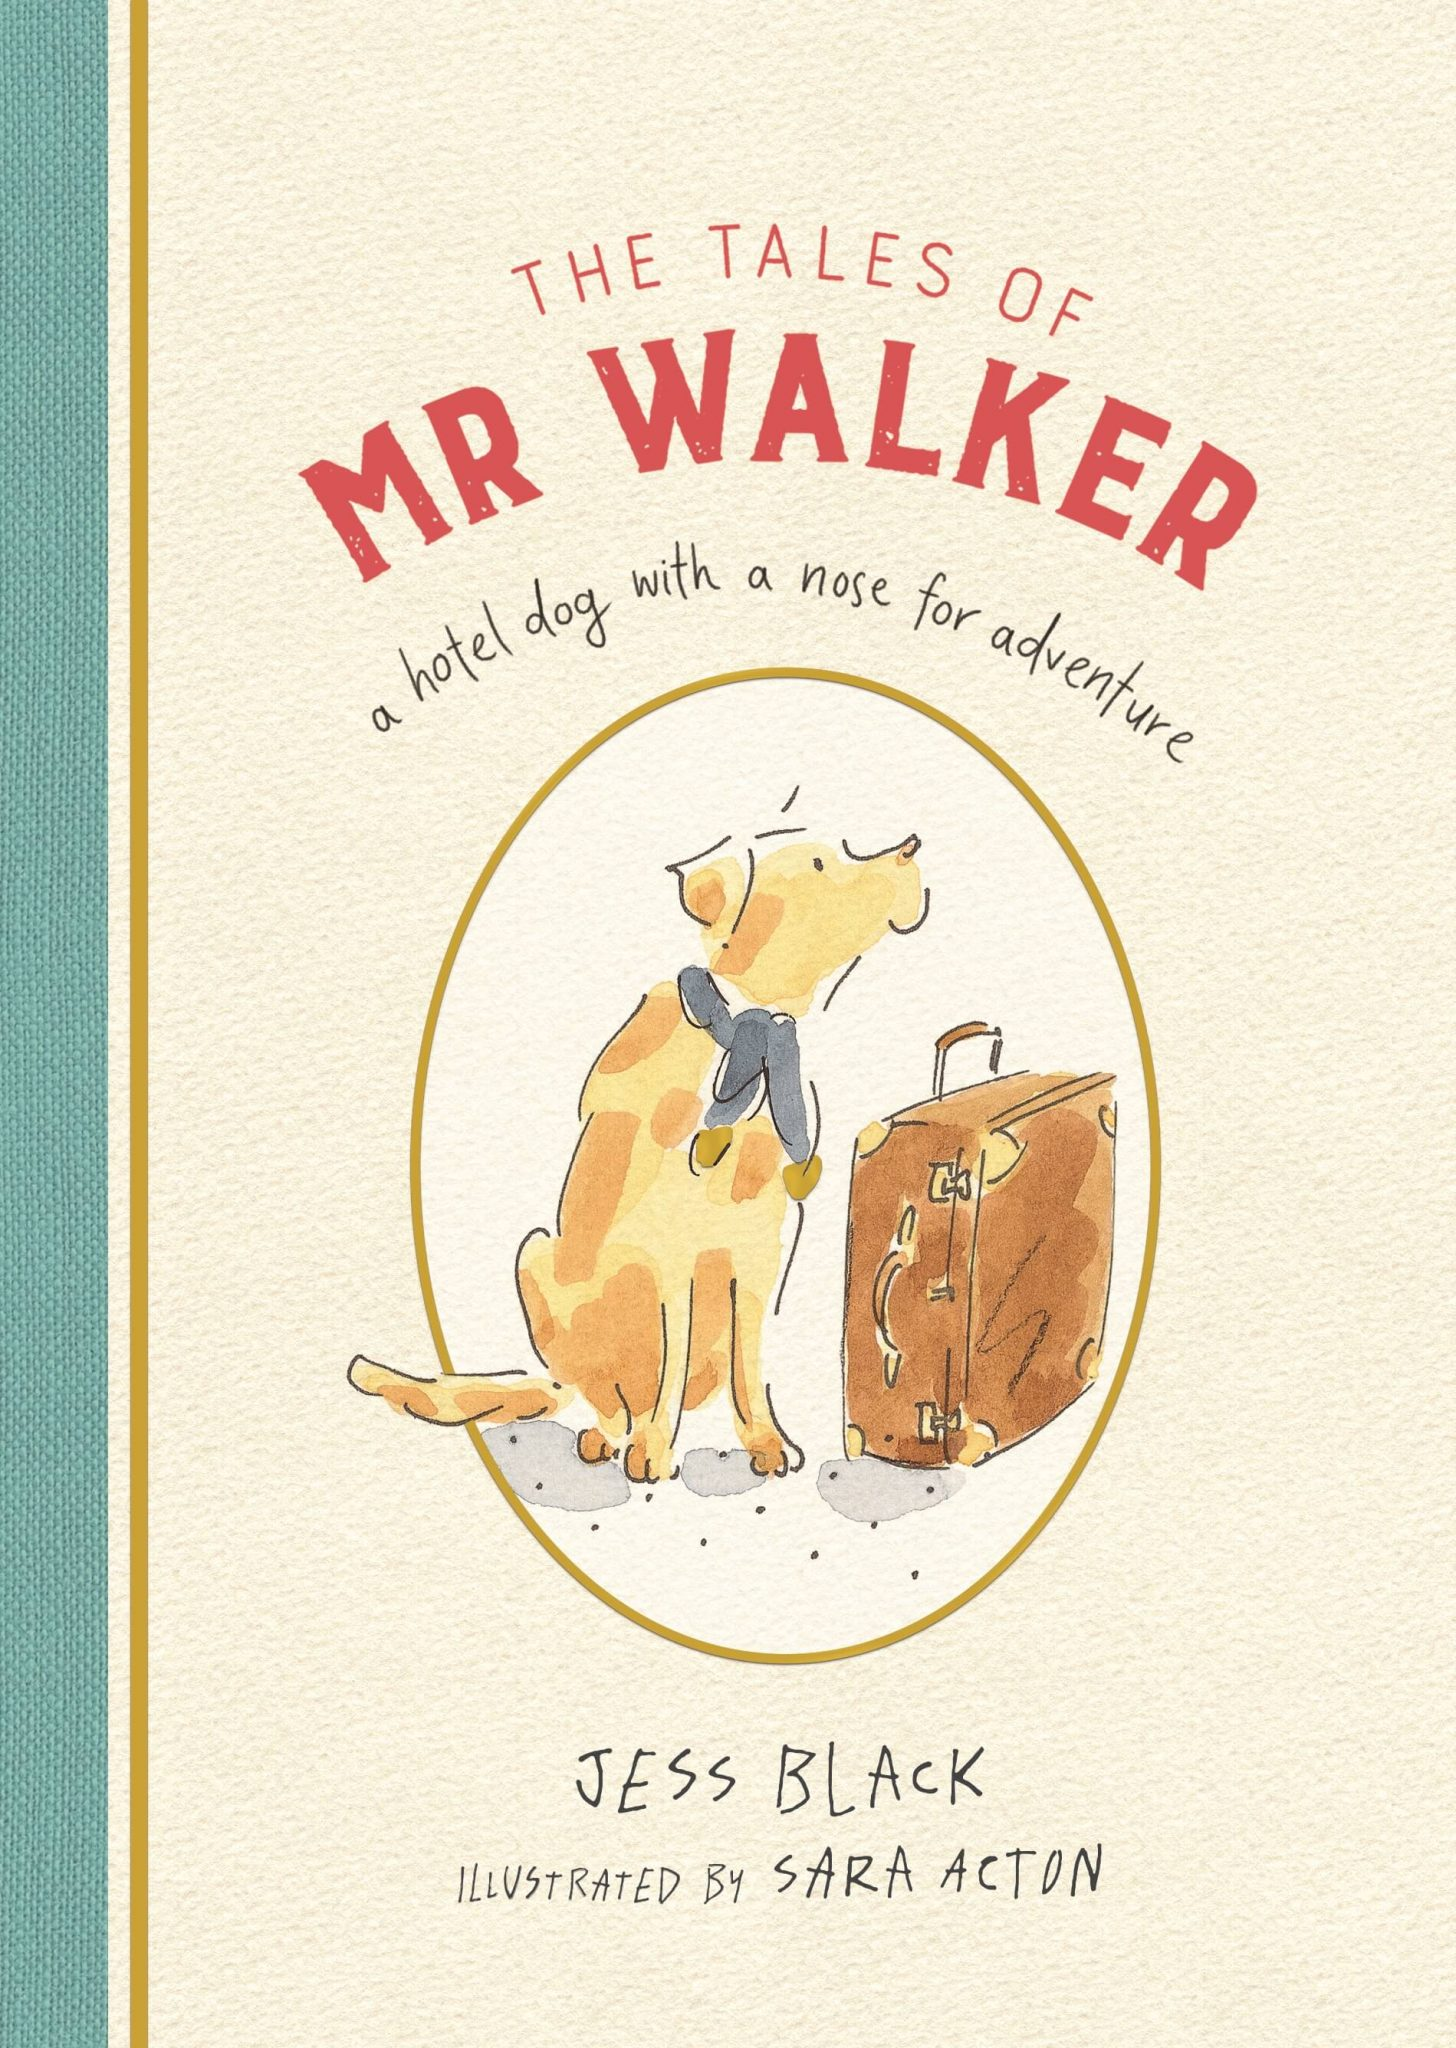 the tales of mr walker - Jess Black